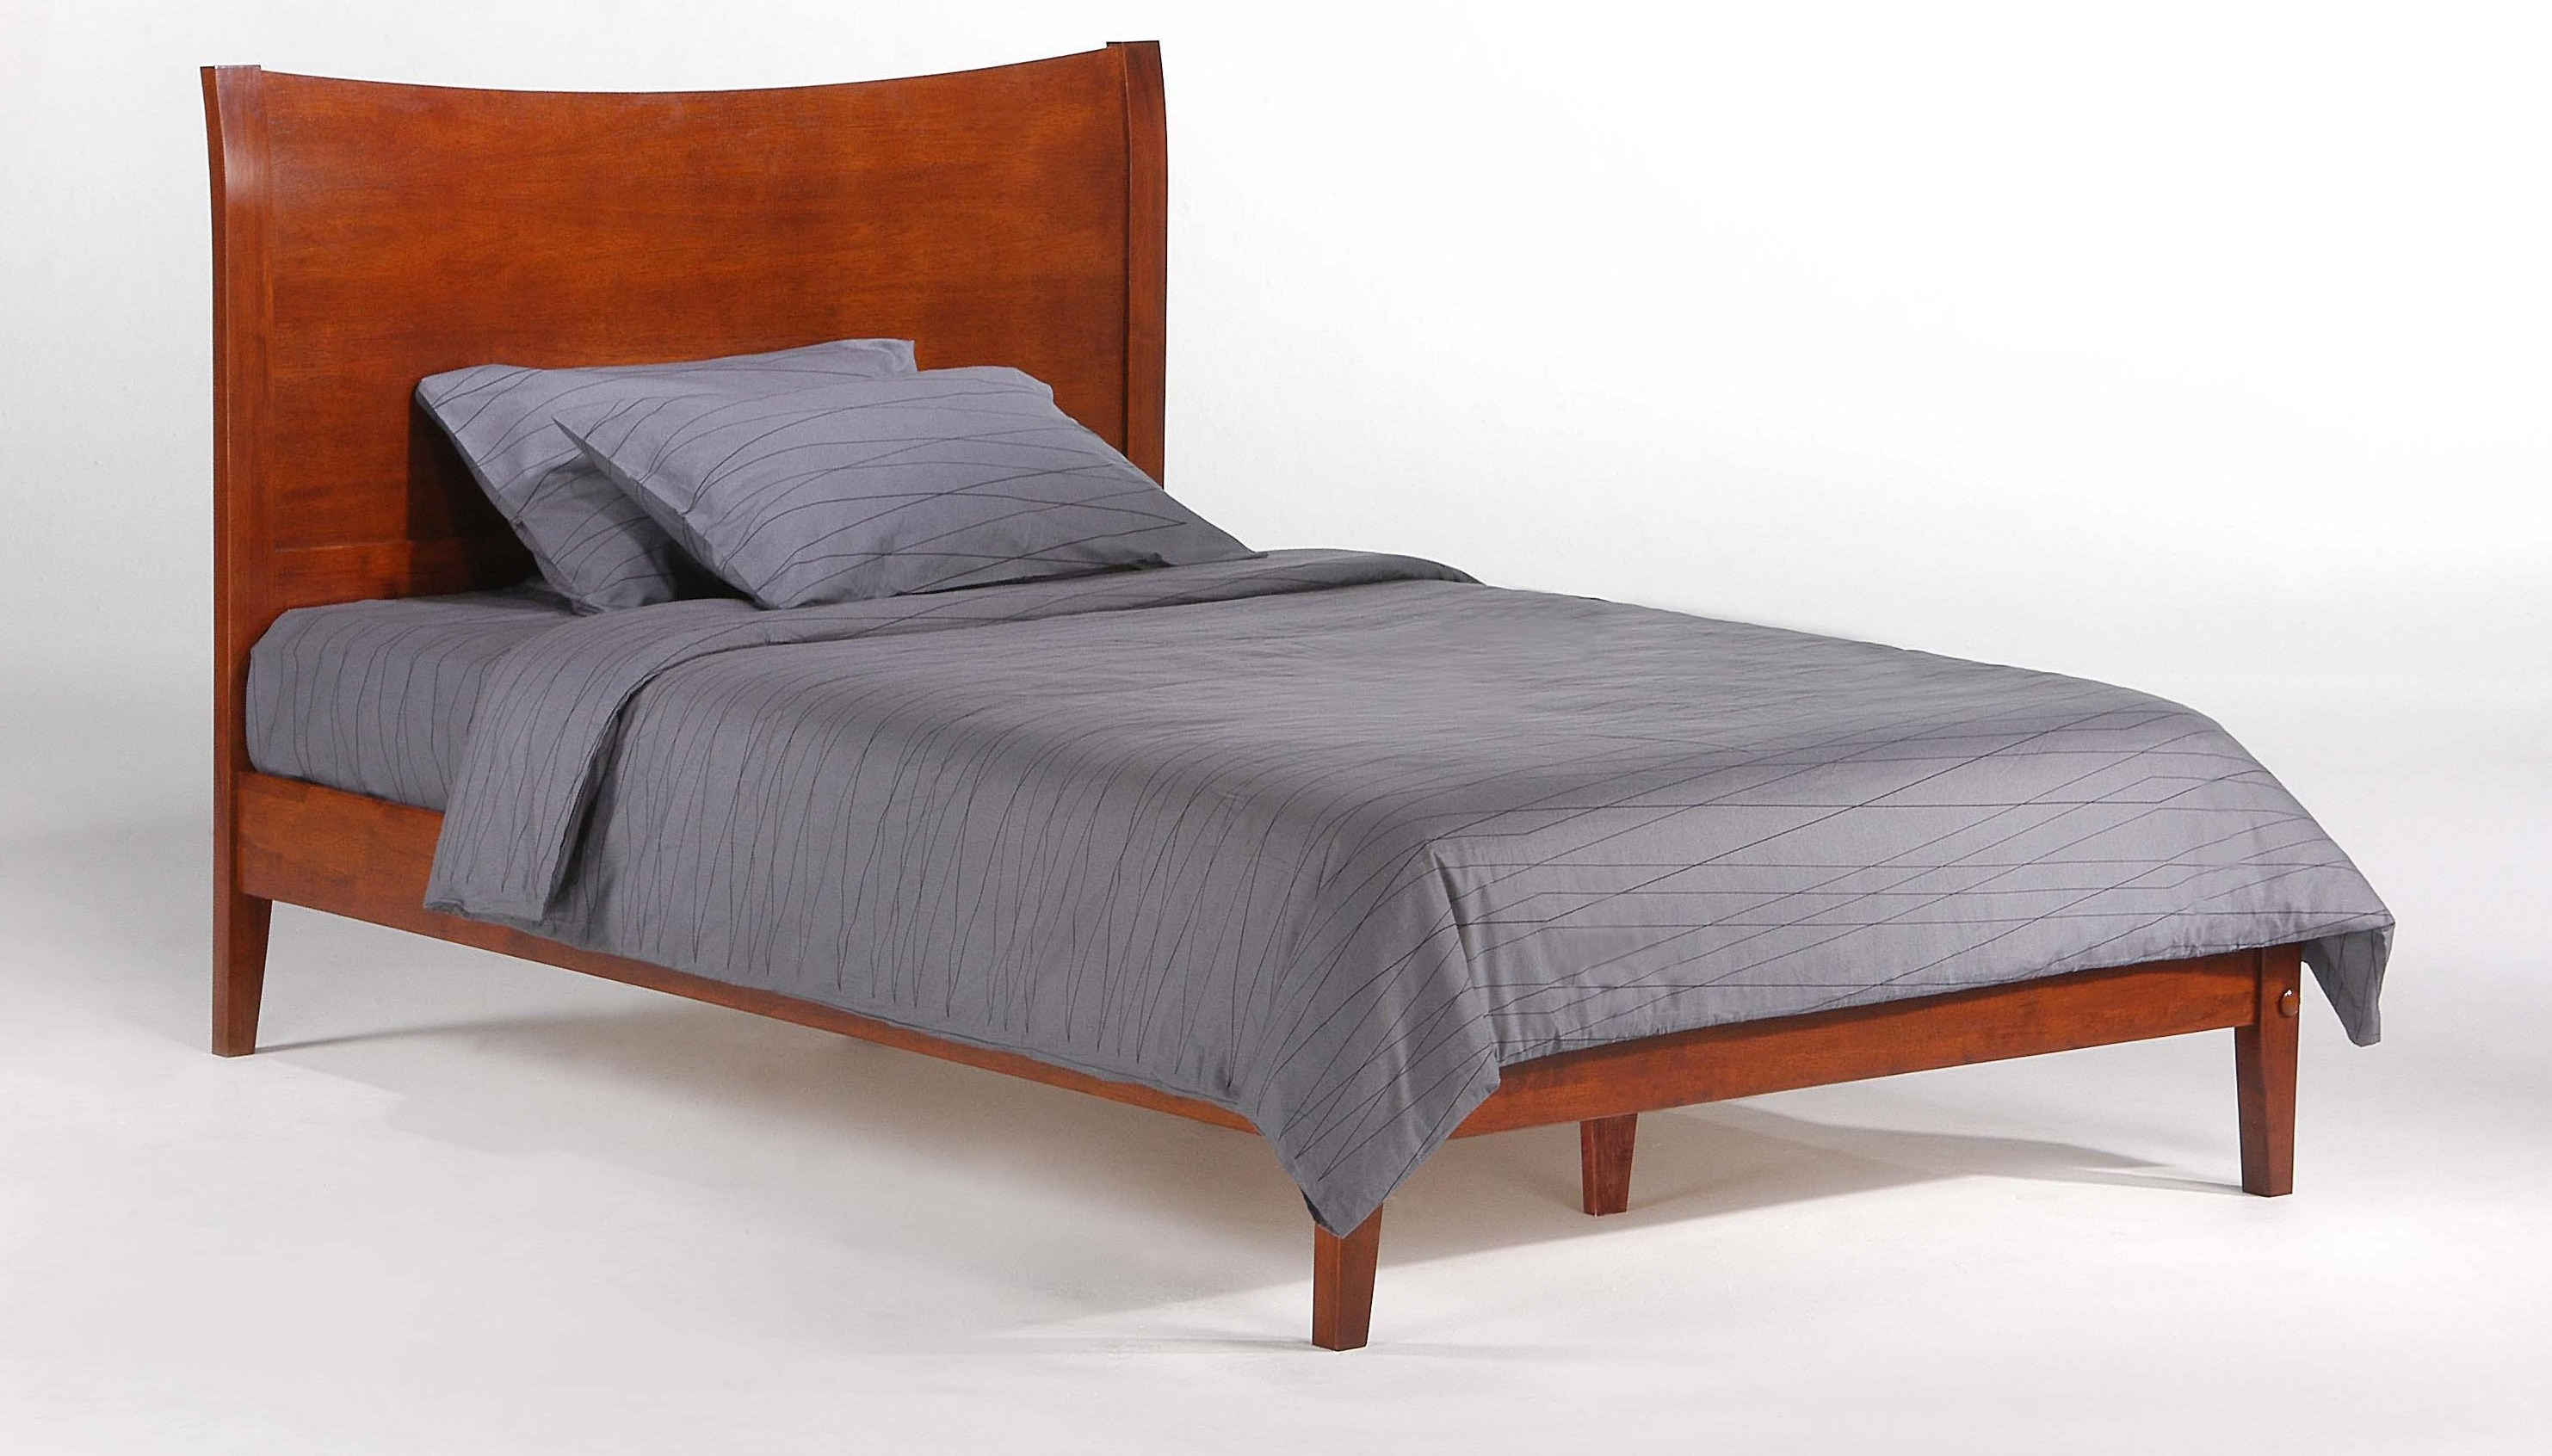 Blackpepper - Cherry King Bed by Pacific Manufacturing at SlumberWorld